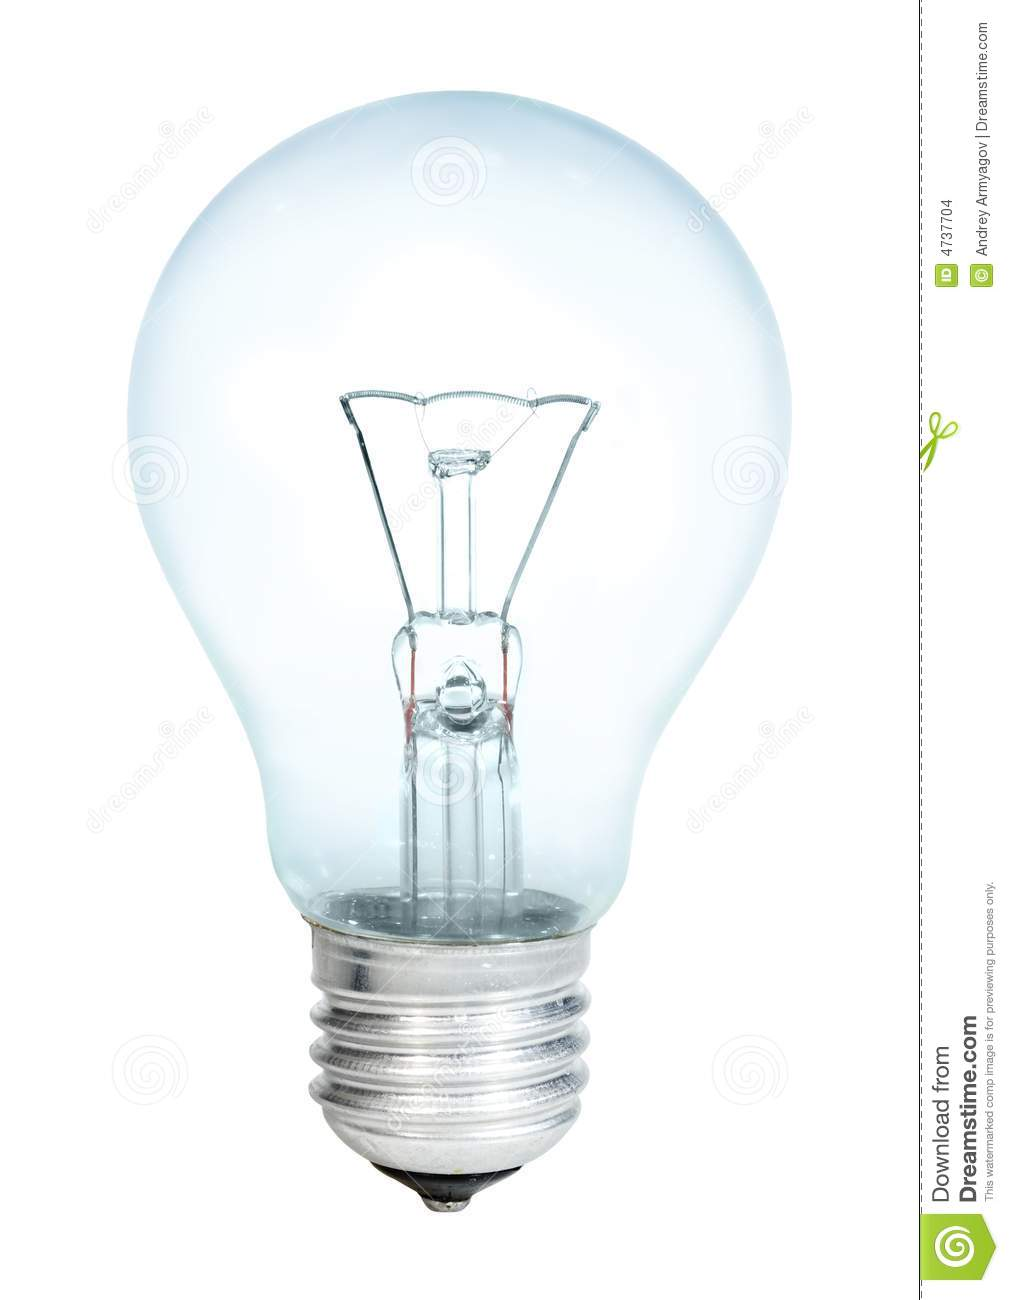 Electric Lamp Stock Images - Image: 4737704